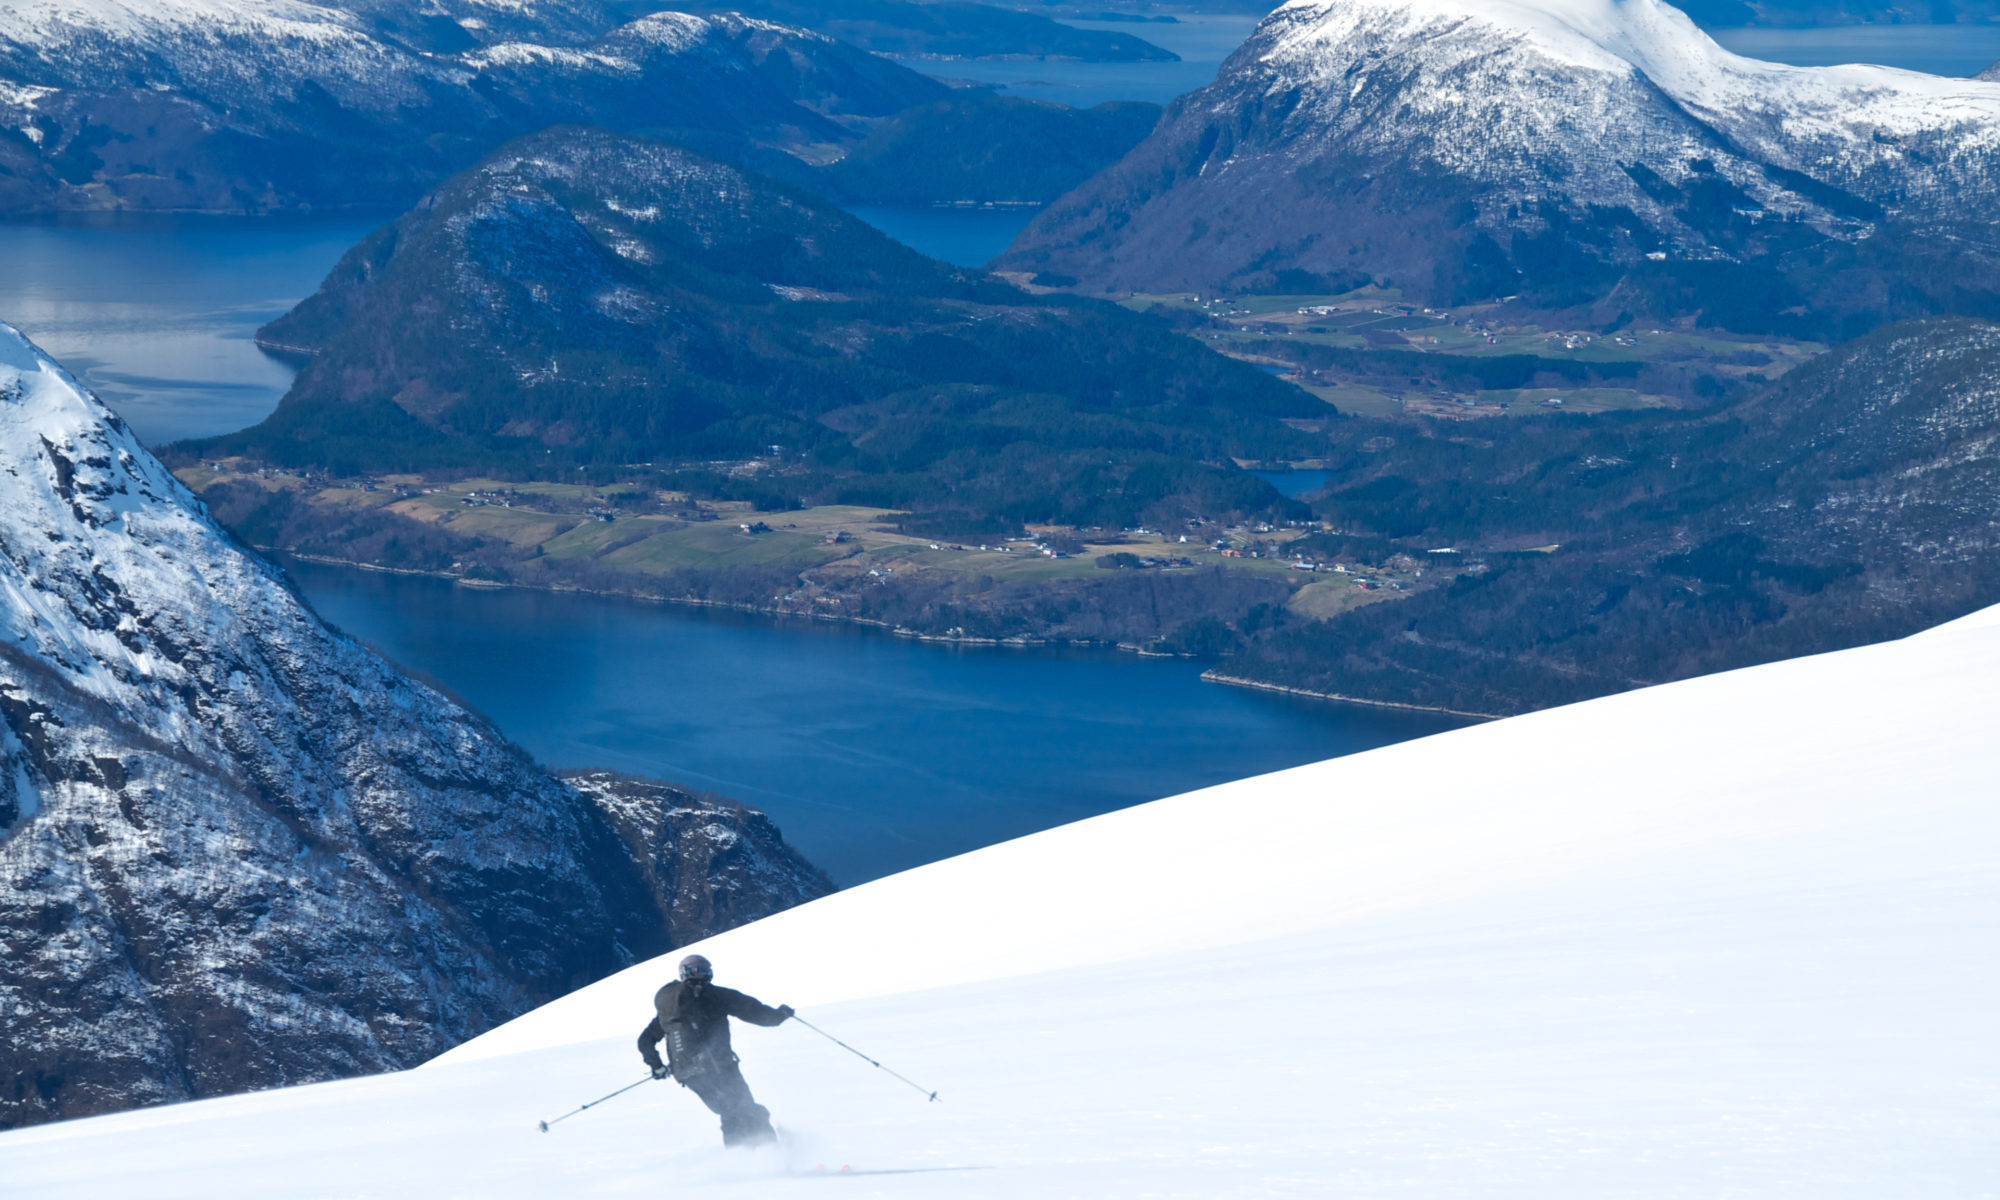 Fjord Skiing at Mt. Blånebba at Romsdalseggen. Romsdal, Norway.